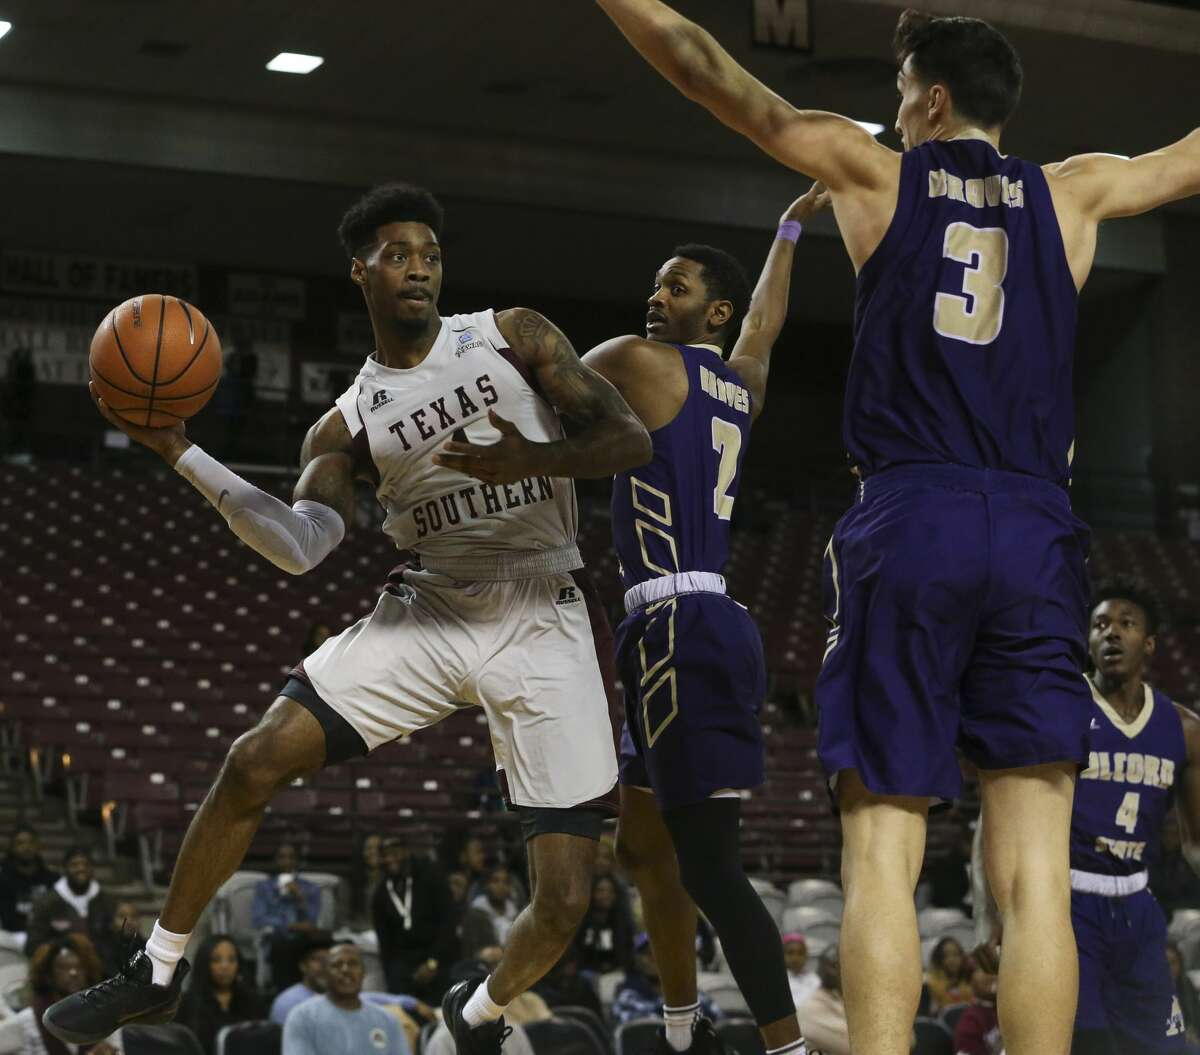 Texas Southern Tigers guard Donte Clark (1) makes a pass while covered by Alcorn State Braves players A.J. Mosby (2) and Tyler Carter (3) during the first quarter of a Southwestern Athletic Conference game at Health & Physical Education Arena on Wednesday, Jan. 3, 2018, in Houston. ( Yi-Chin Lee / Houston Chronicle )